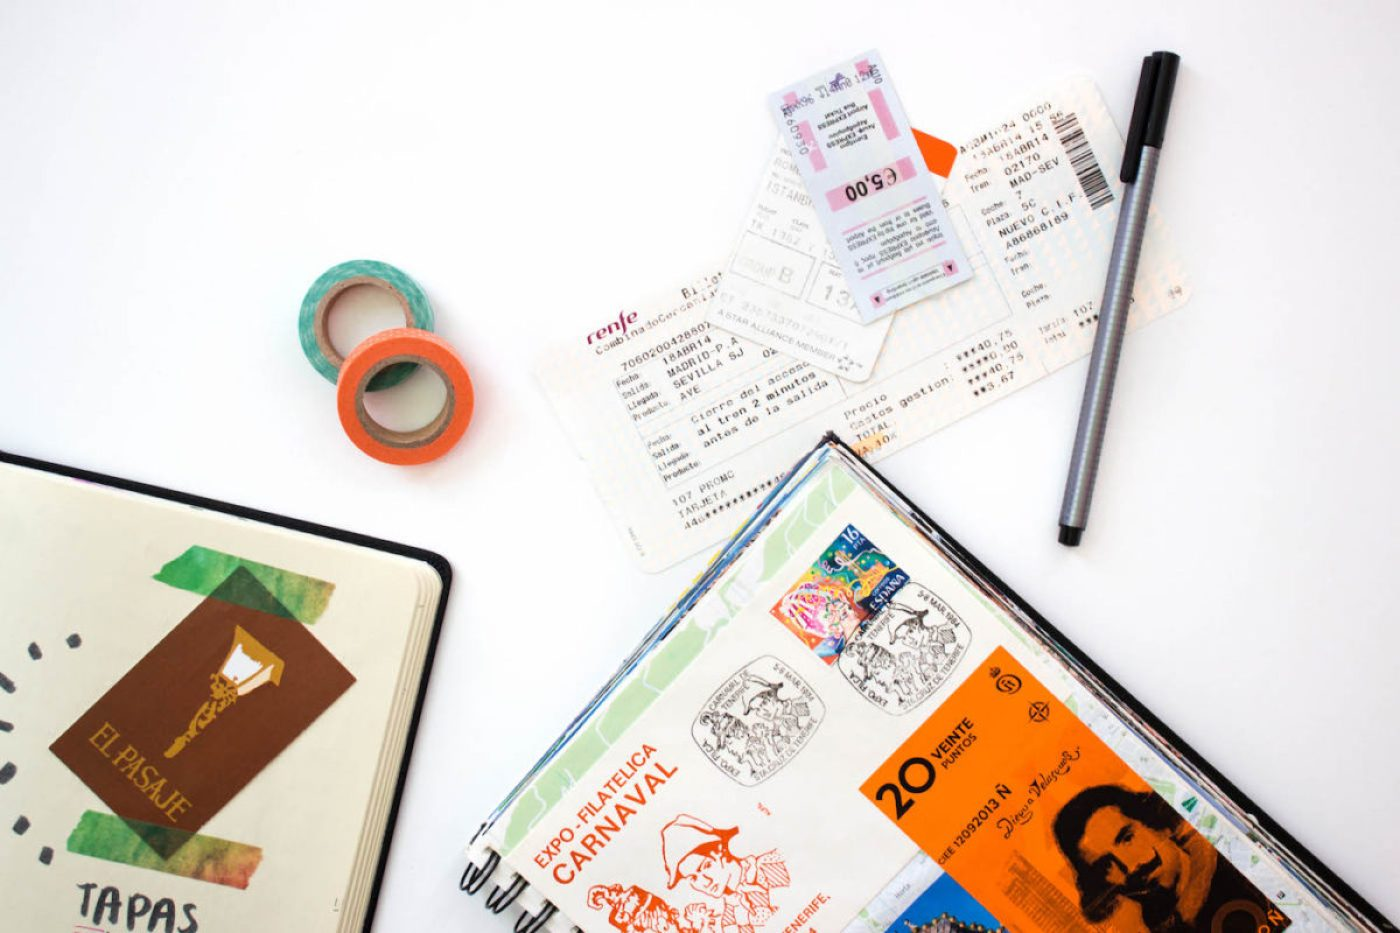 The Ultimate Guide to Your Best Travel Journal - Travel Journal Prompts & More